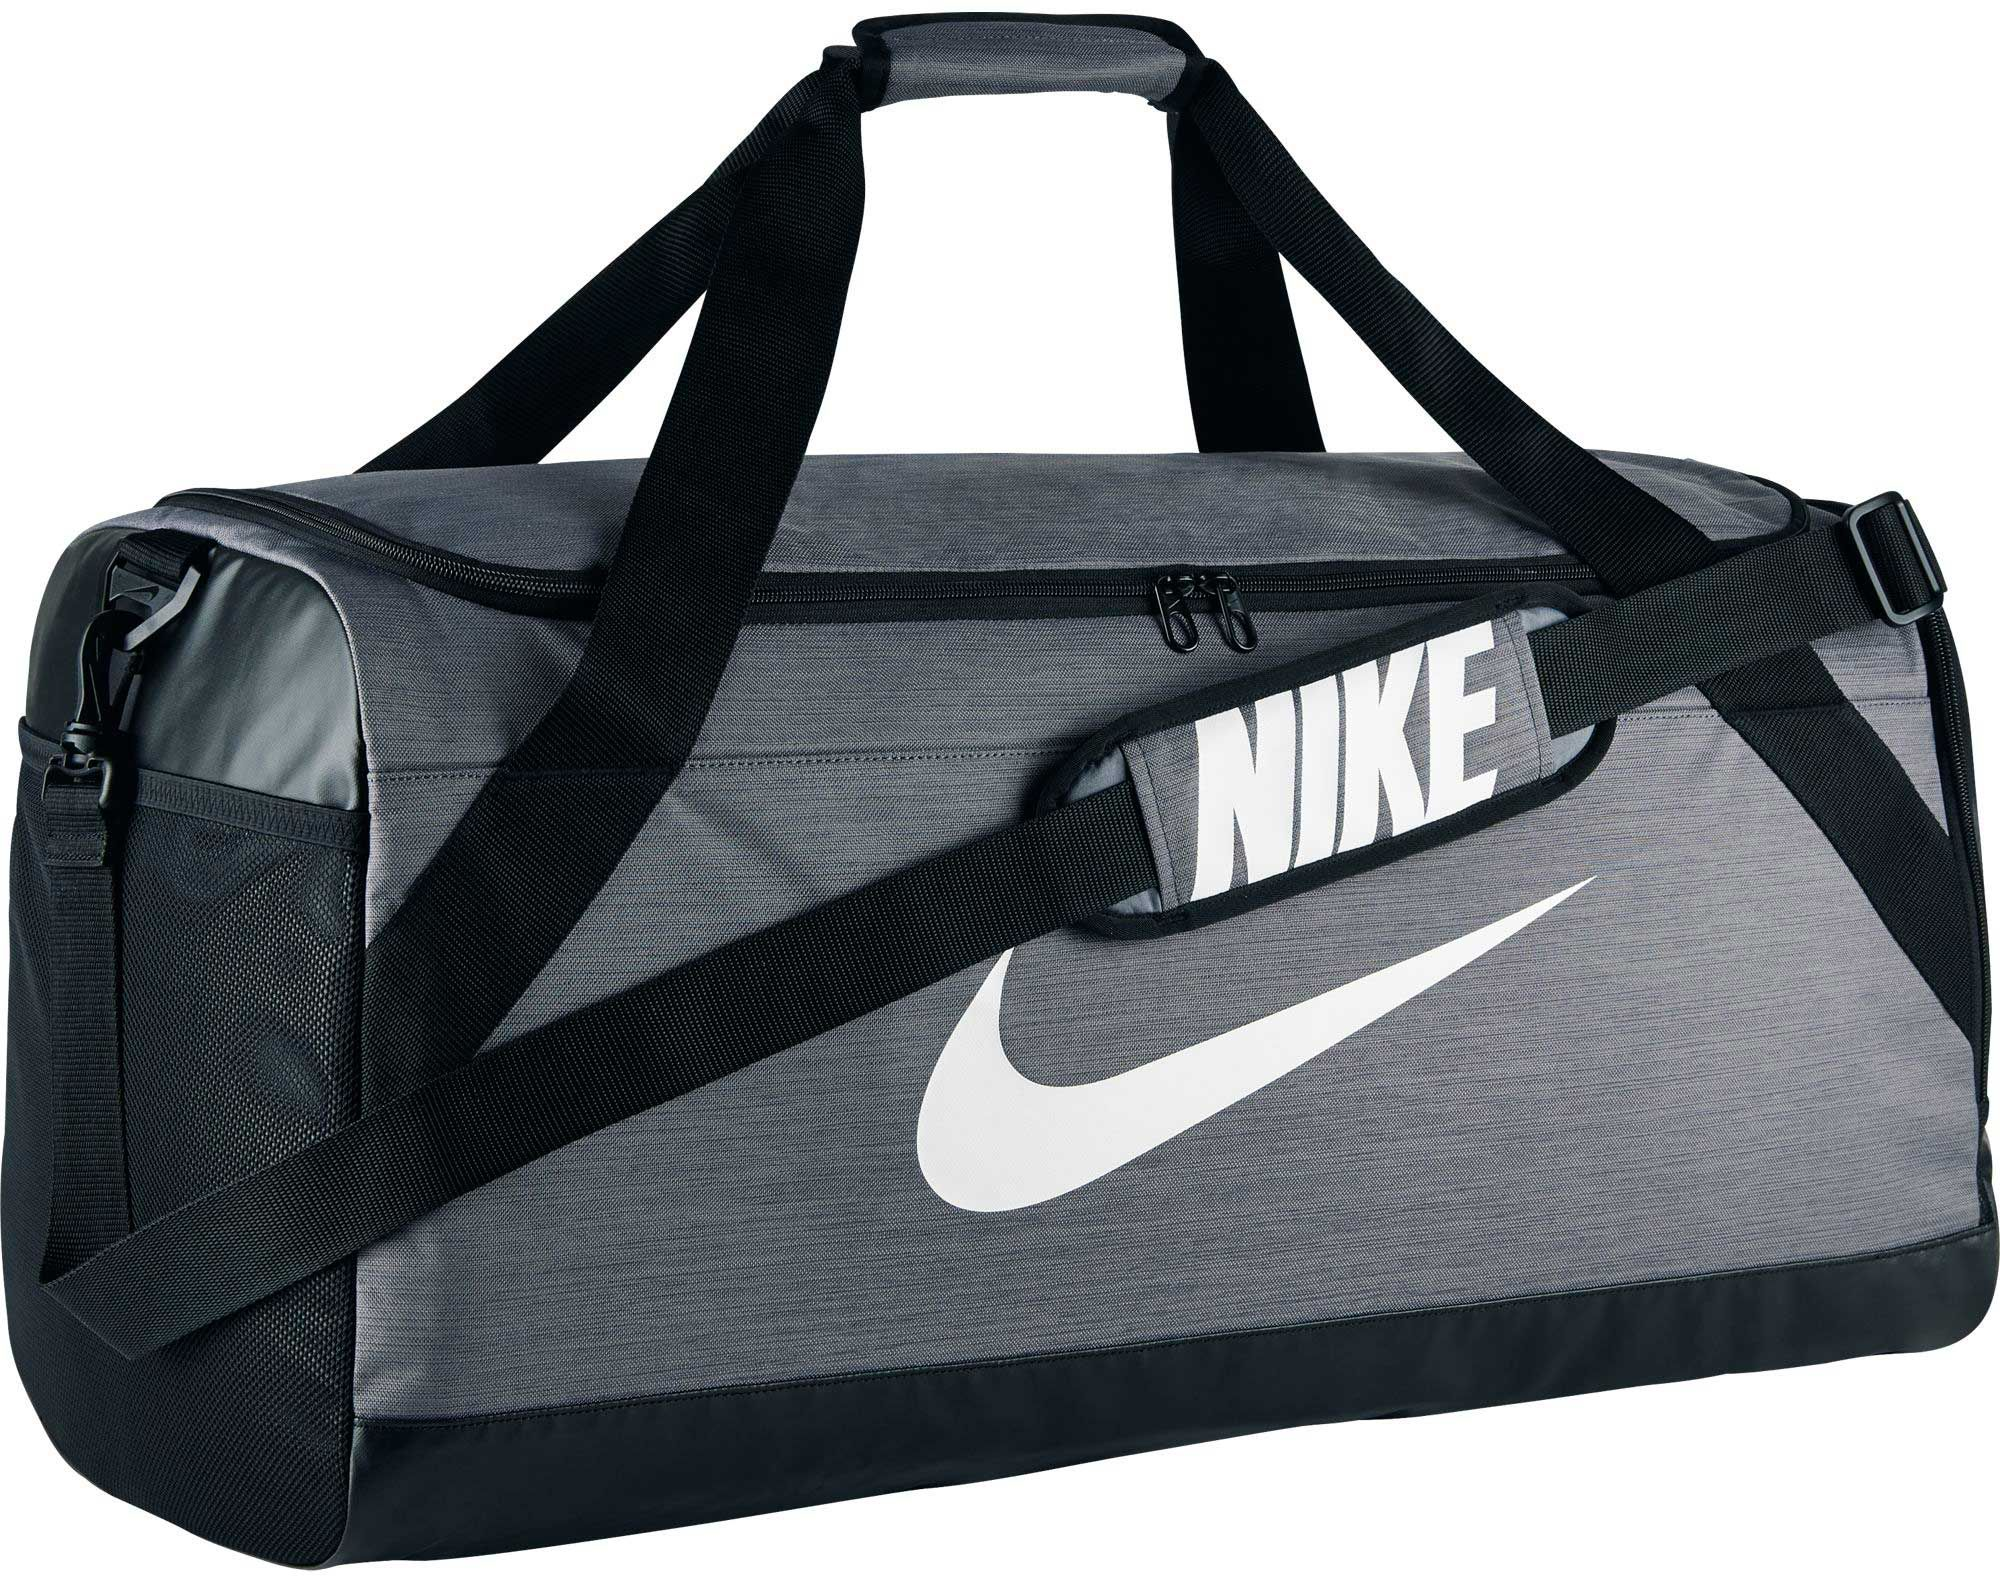 Extra Large Duffle Bags For Travel